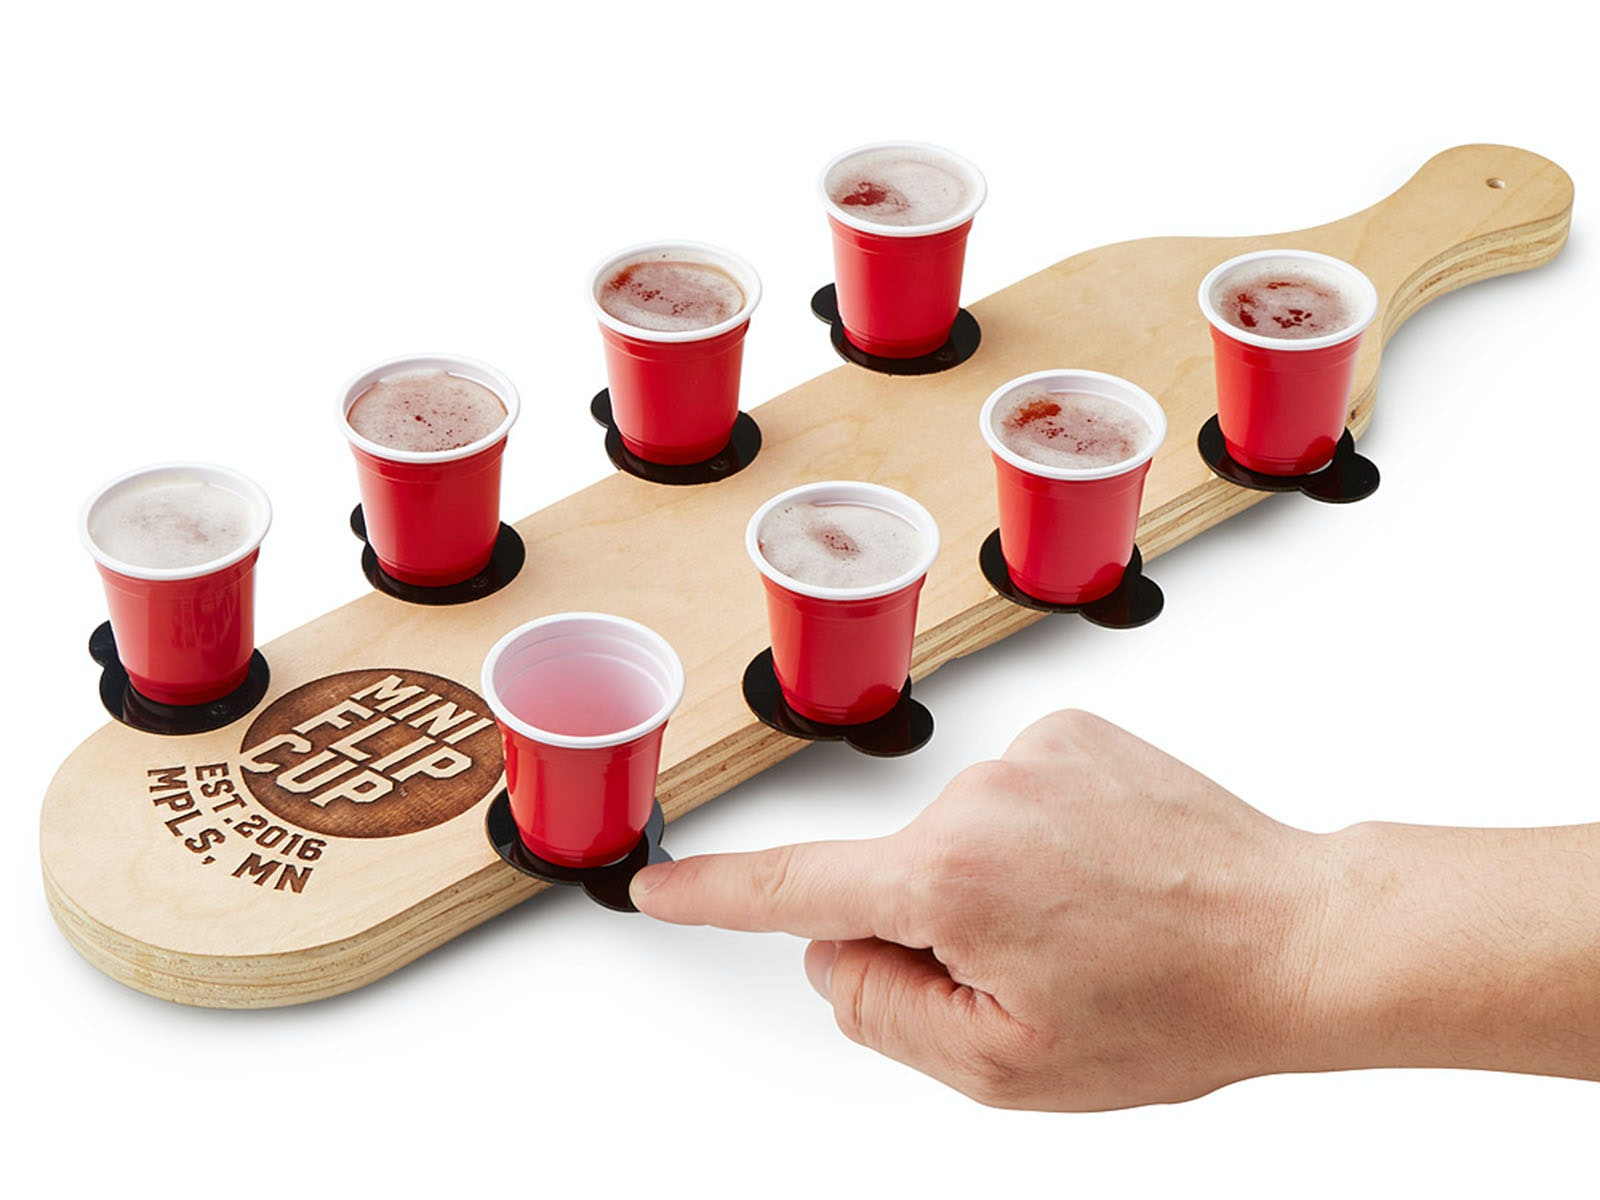 A miniature travel edition of flip cup